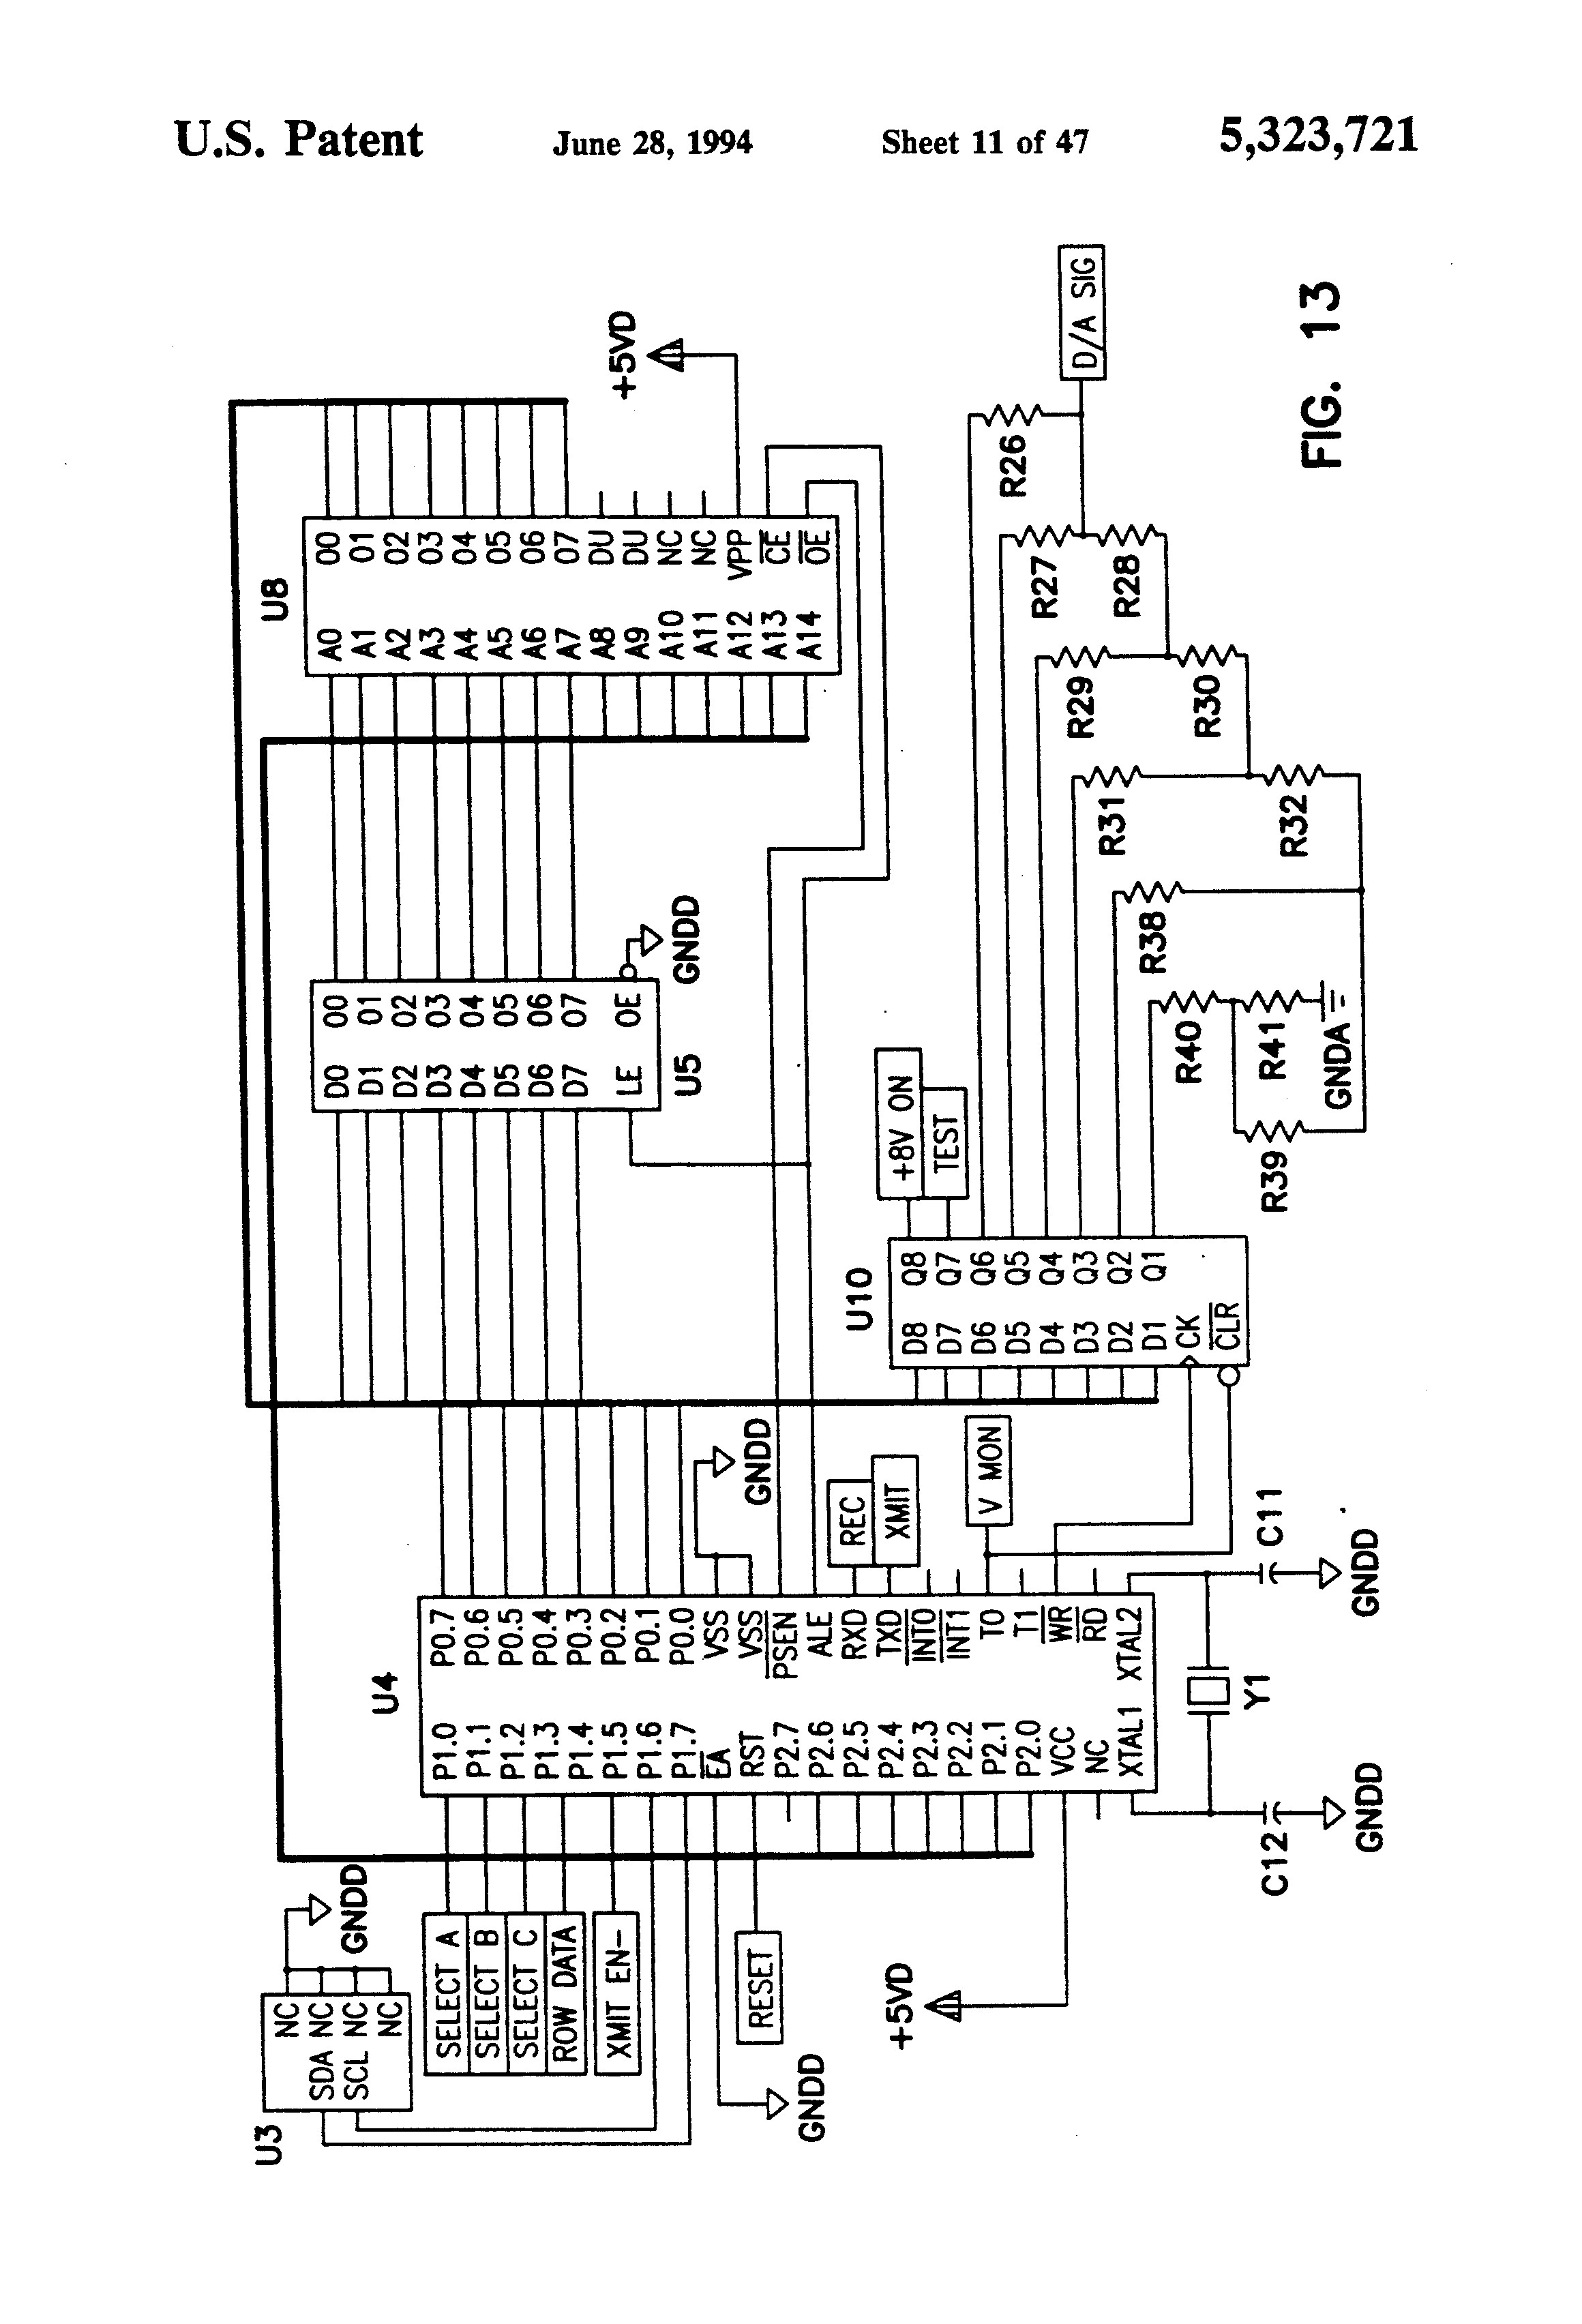 John Deere Joystick Wire Diagram Free Download • Oasis-dl.co